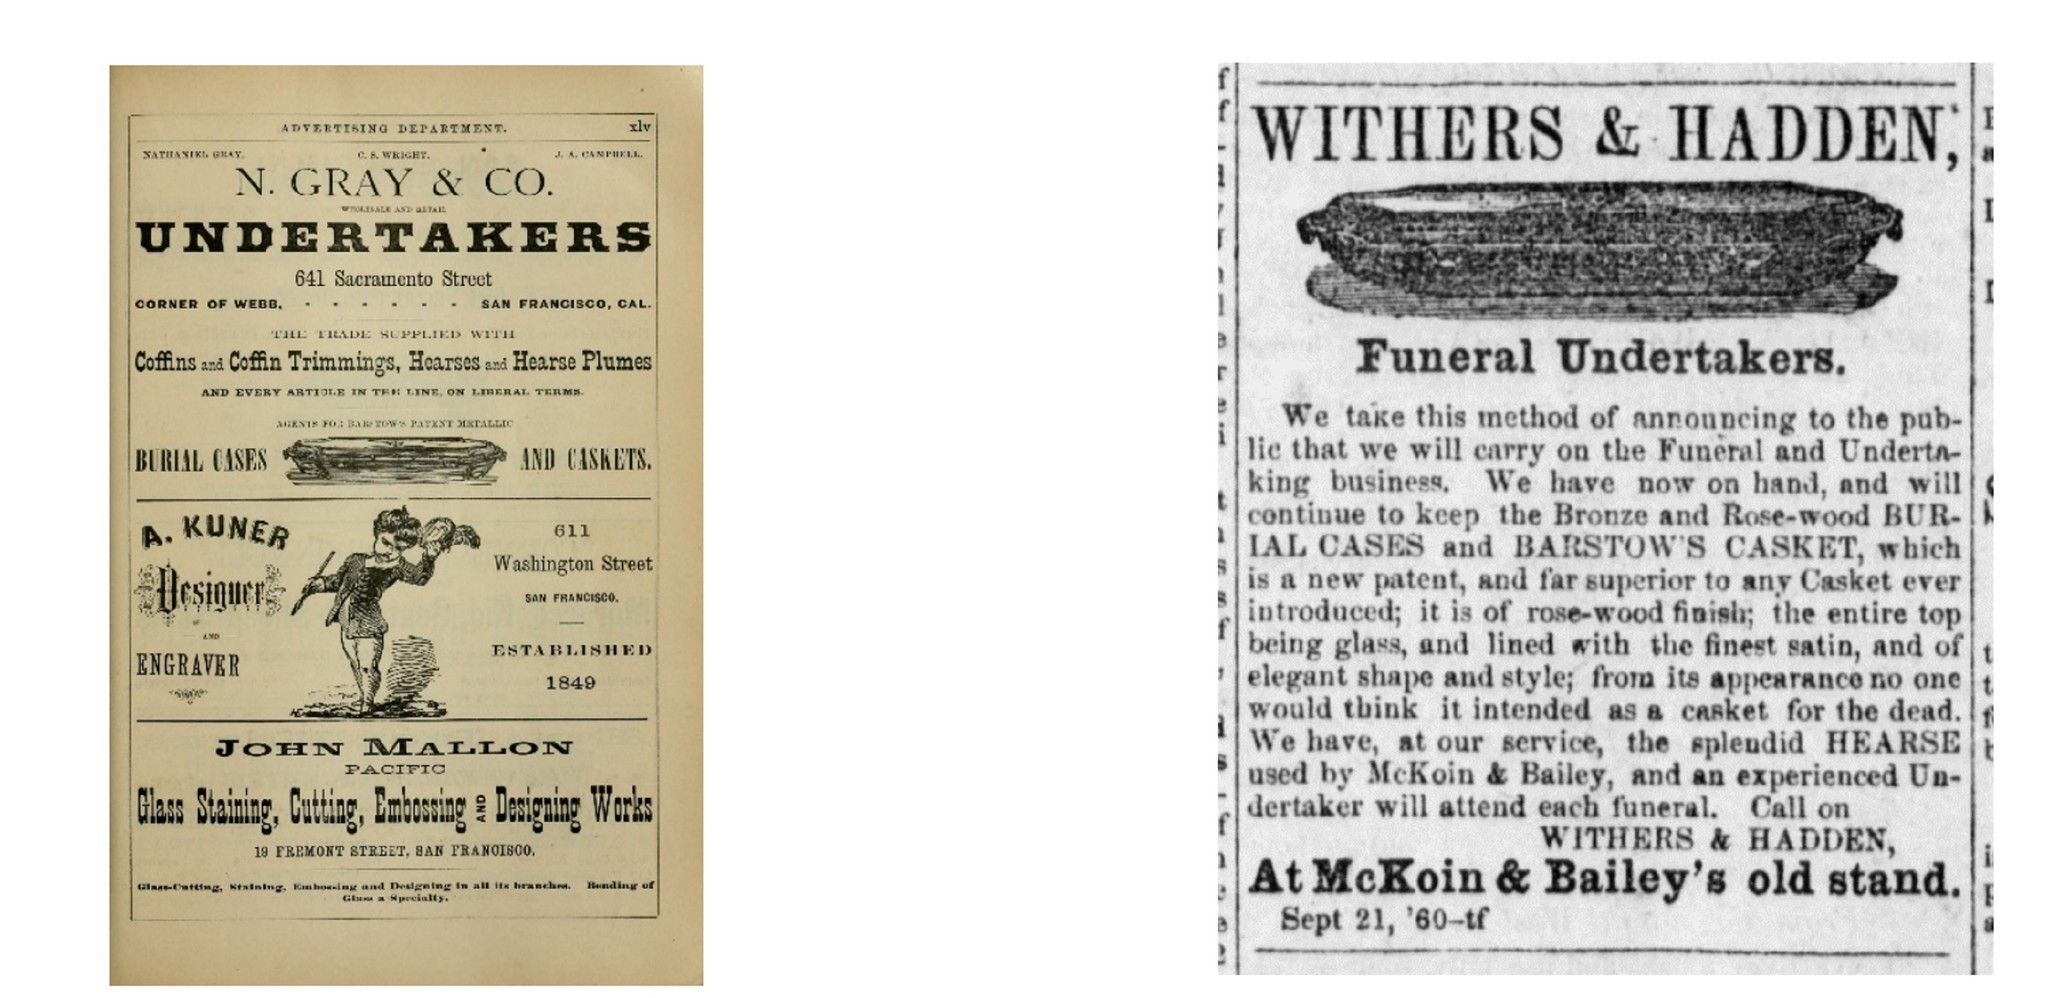 Undertaker advertisements from the late 19th century.